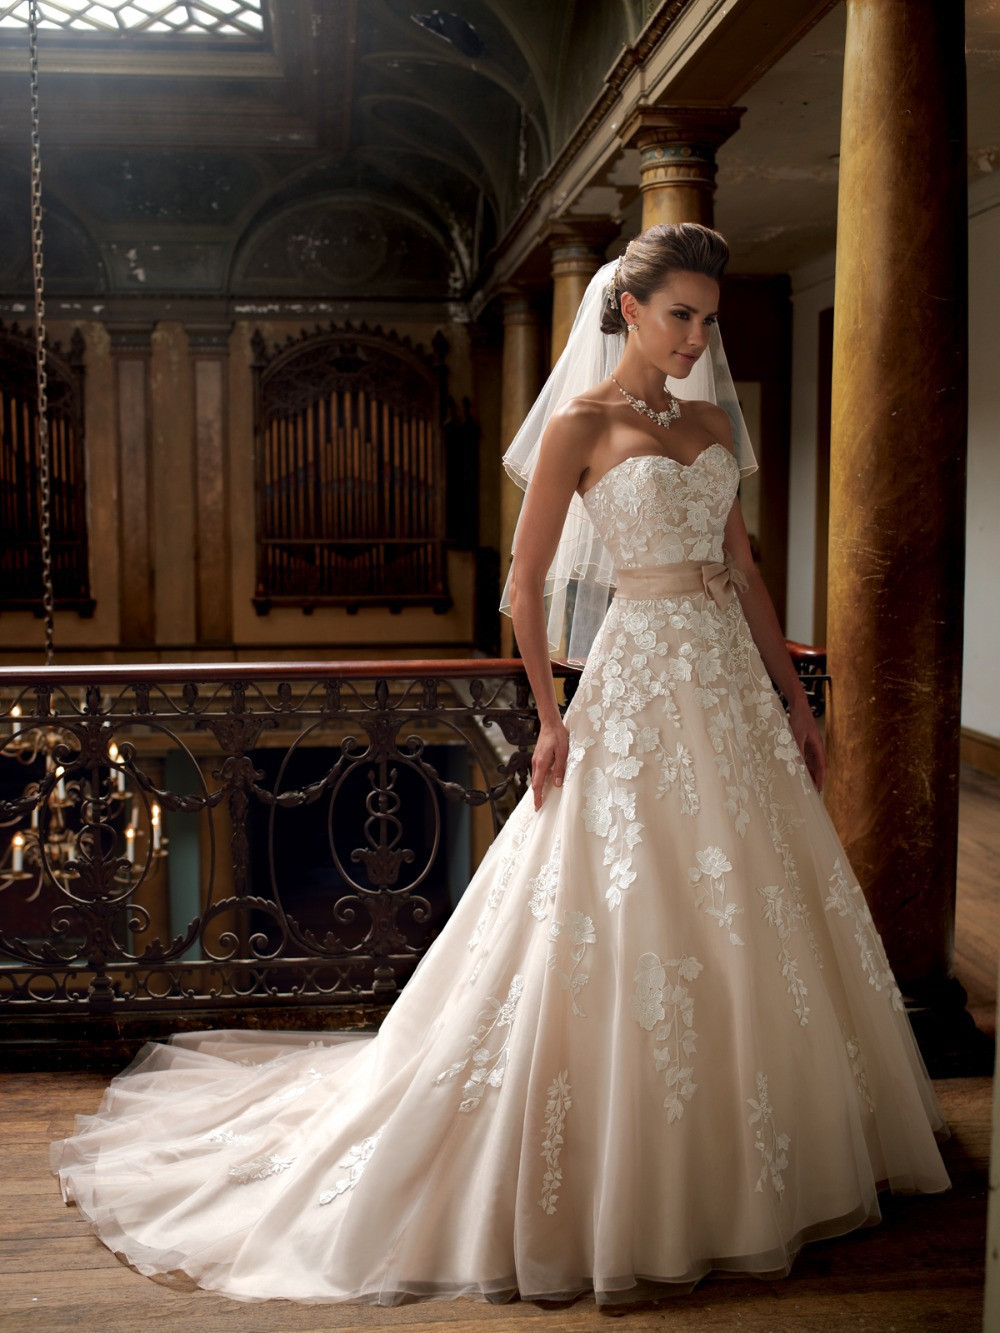 Champagne Wedding Gowns  New Arrival 2015 Sweetheart Applique A Line Floor Length